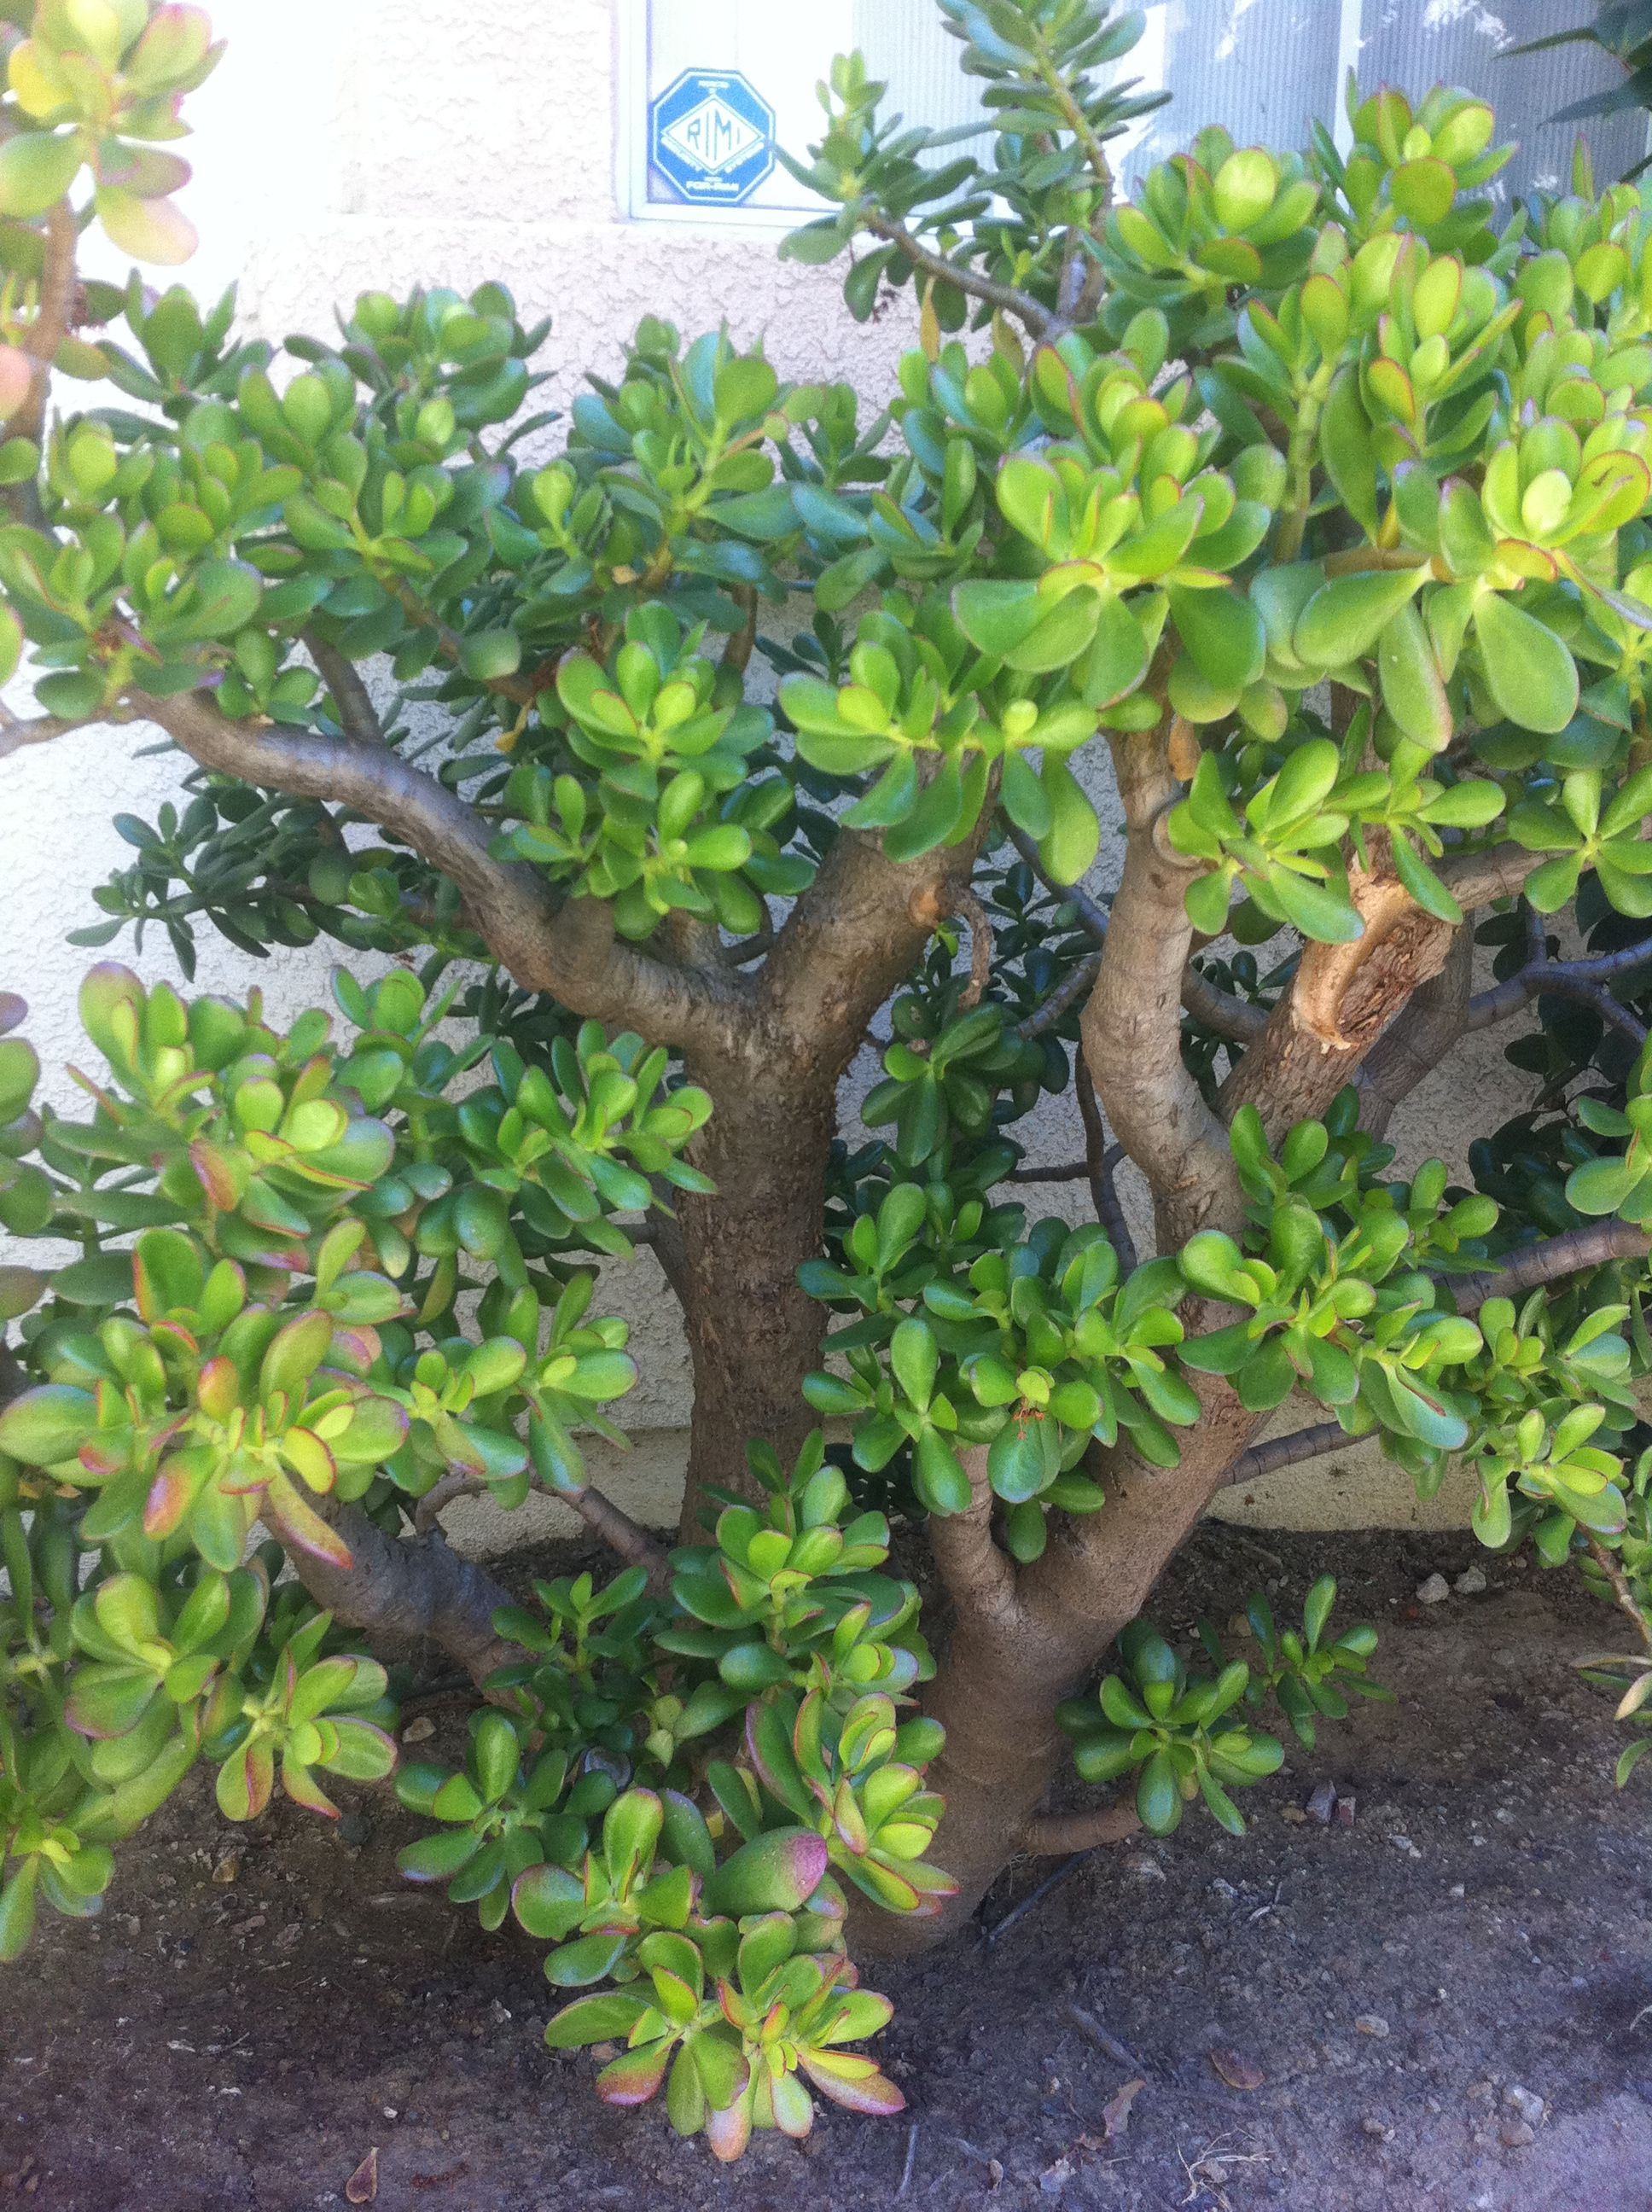 Jade Plant I Planted For 20 Years With Images Jade Plants